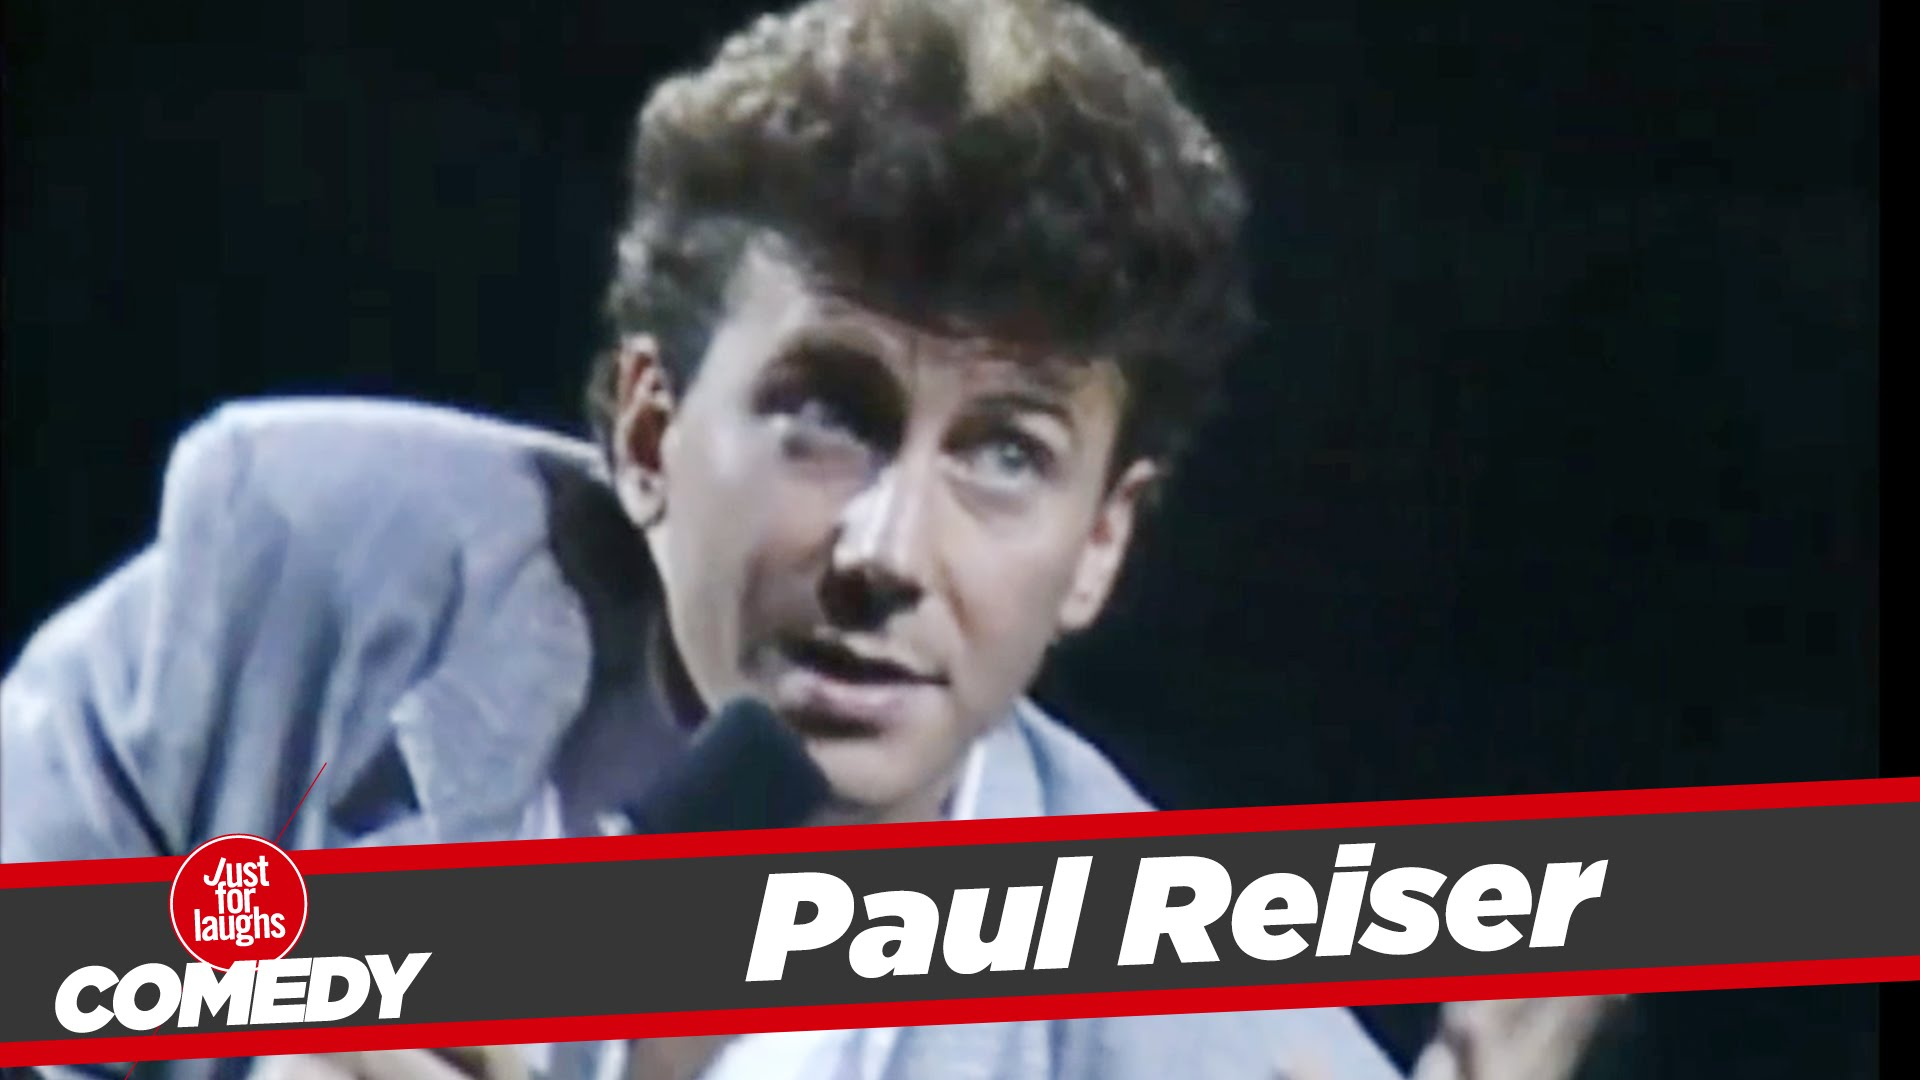 Paul Reiser younger photo one at youtube.com